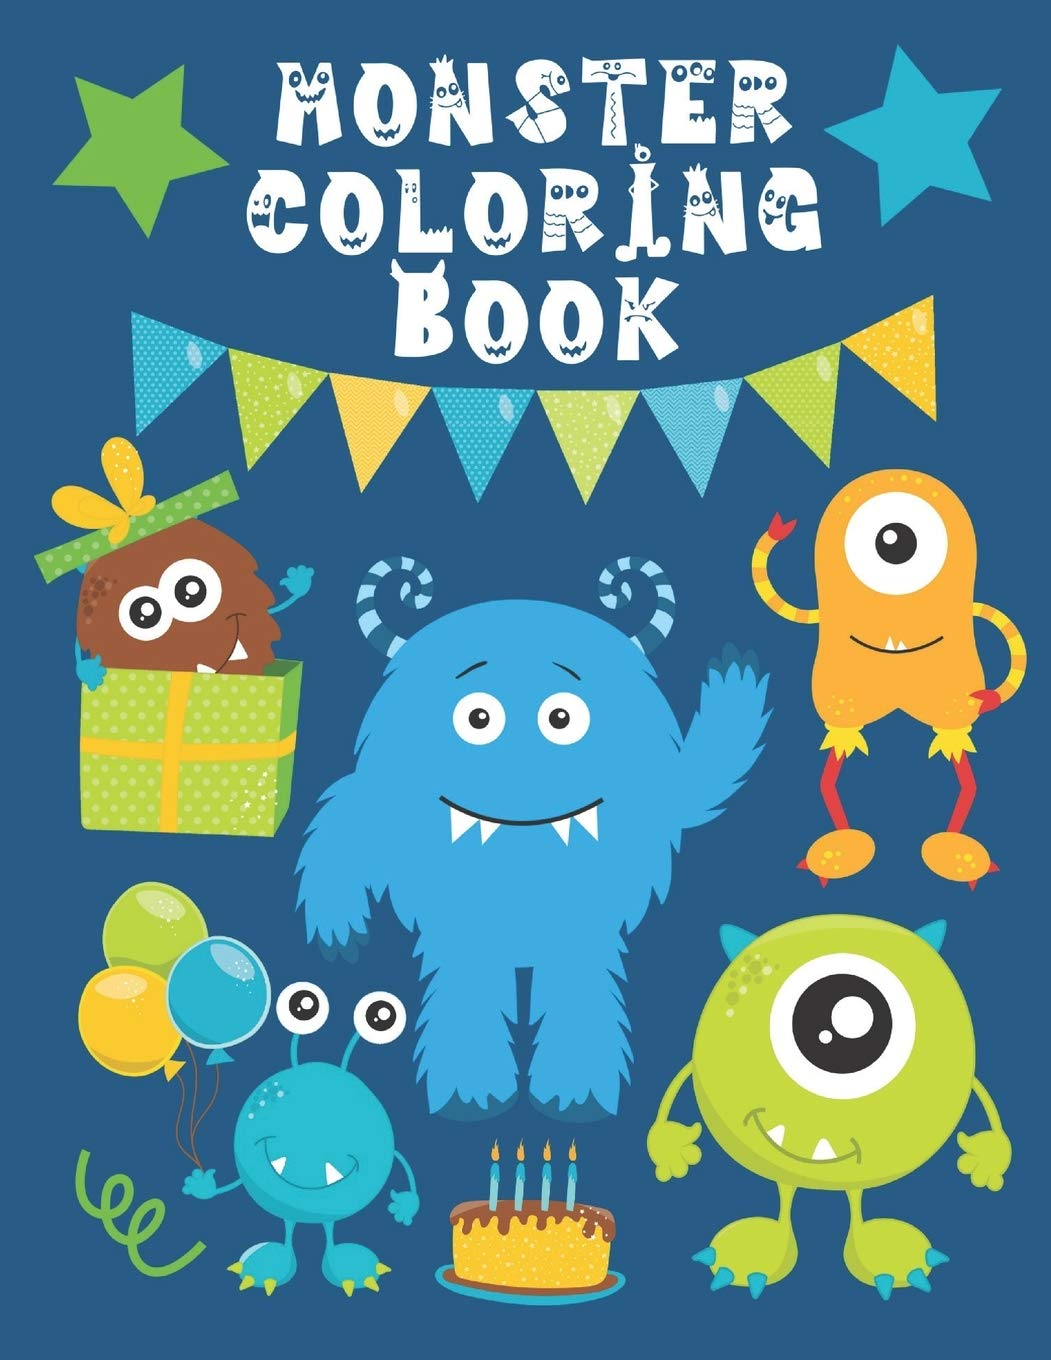 Monster Coloring Book Funny Cute Little Monsters Easy Fun Color Pages For Kids Creative Coloring Books Pages For Kids Kids Purple Press 9781655743016 Amazon Com Books